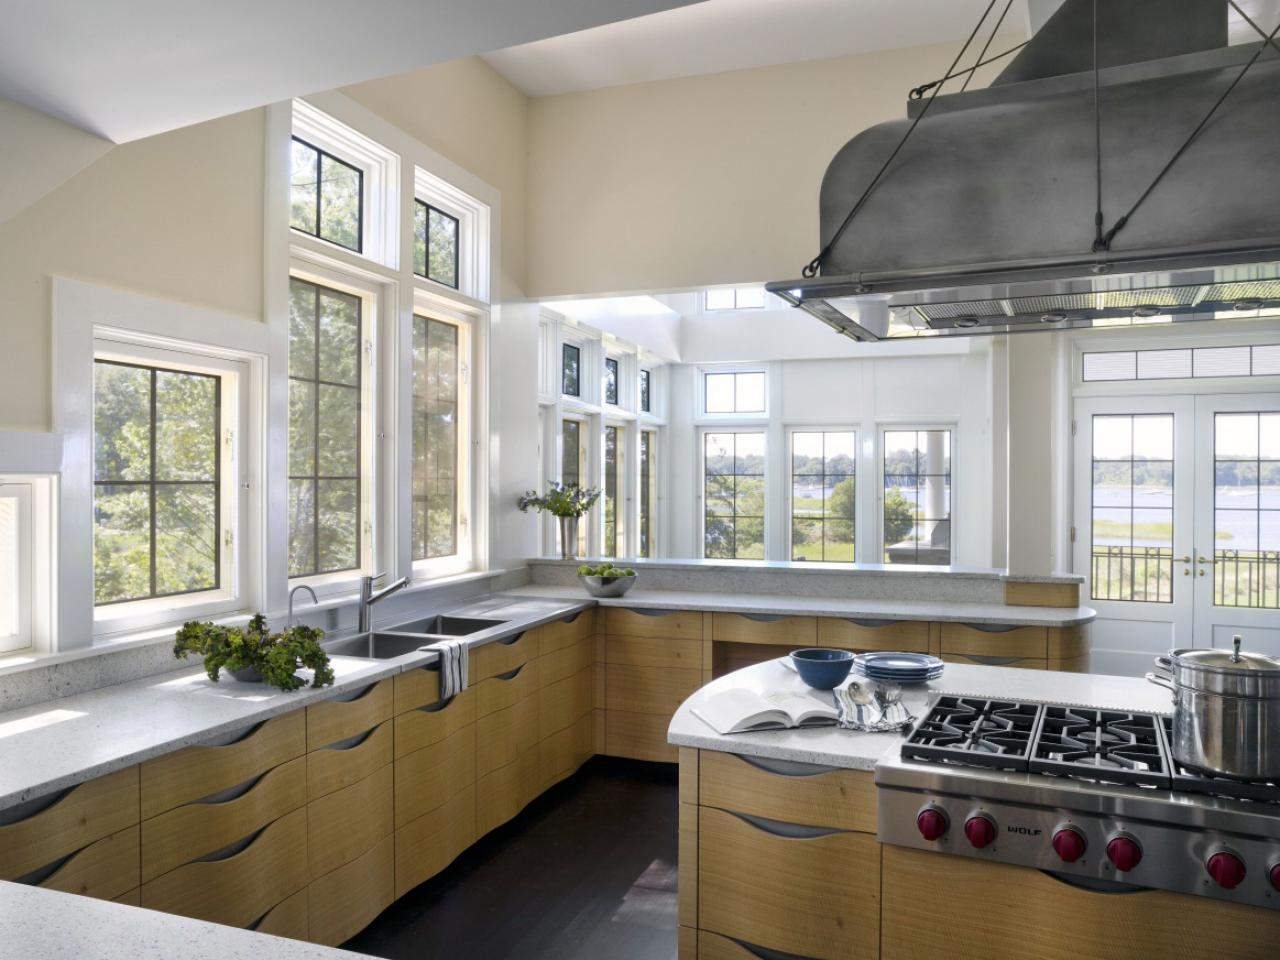 Design Kitchen Online top kitchen design styles: pictures, tips, ideas and options | hgtv